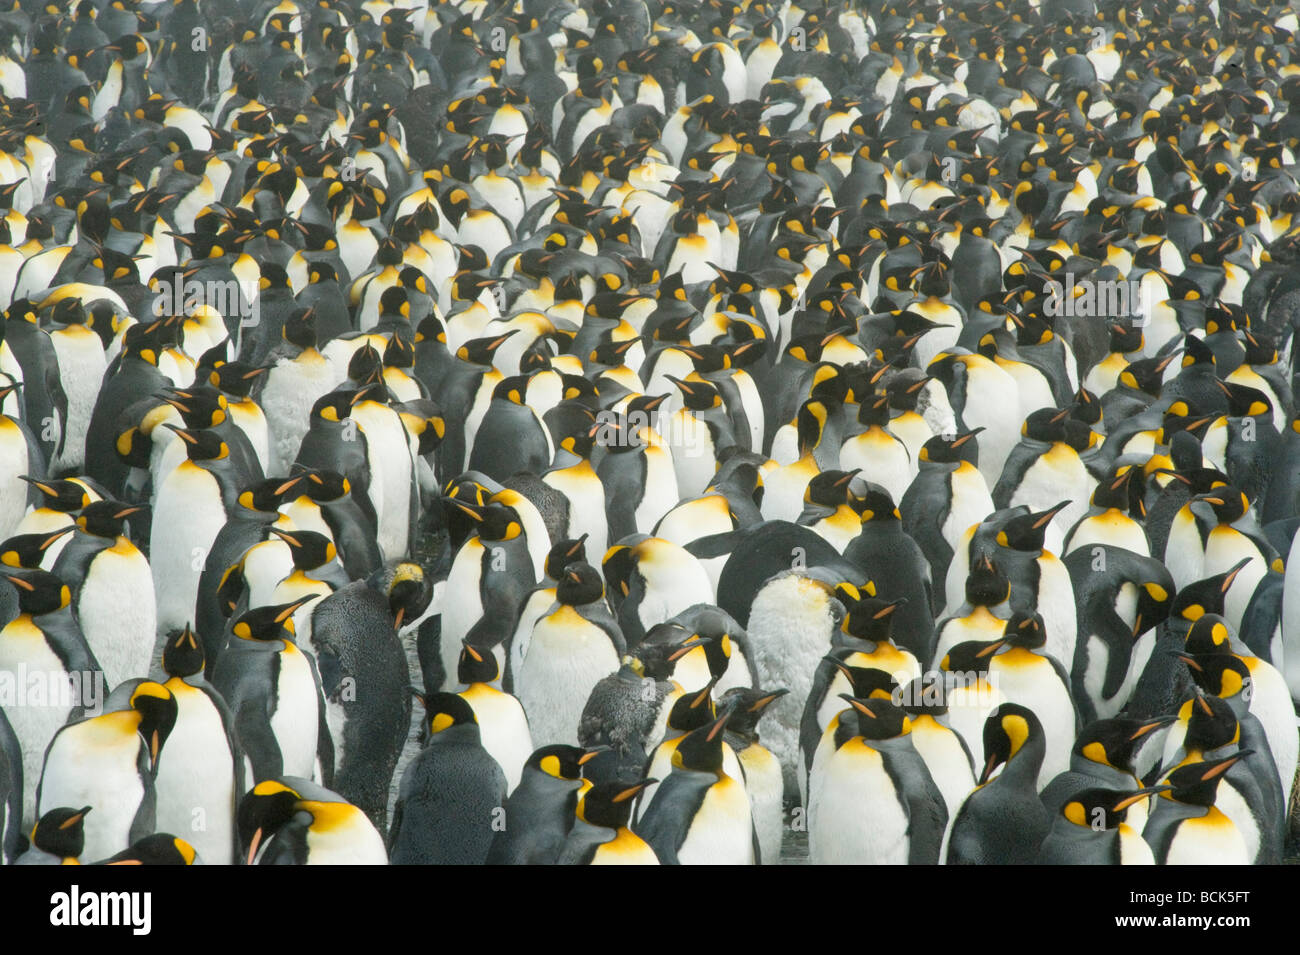 King Penguins (Aptenodytes patagonicus) Molting adults in October, South Georgia - Stock Image